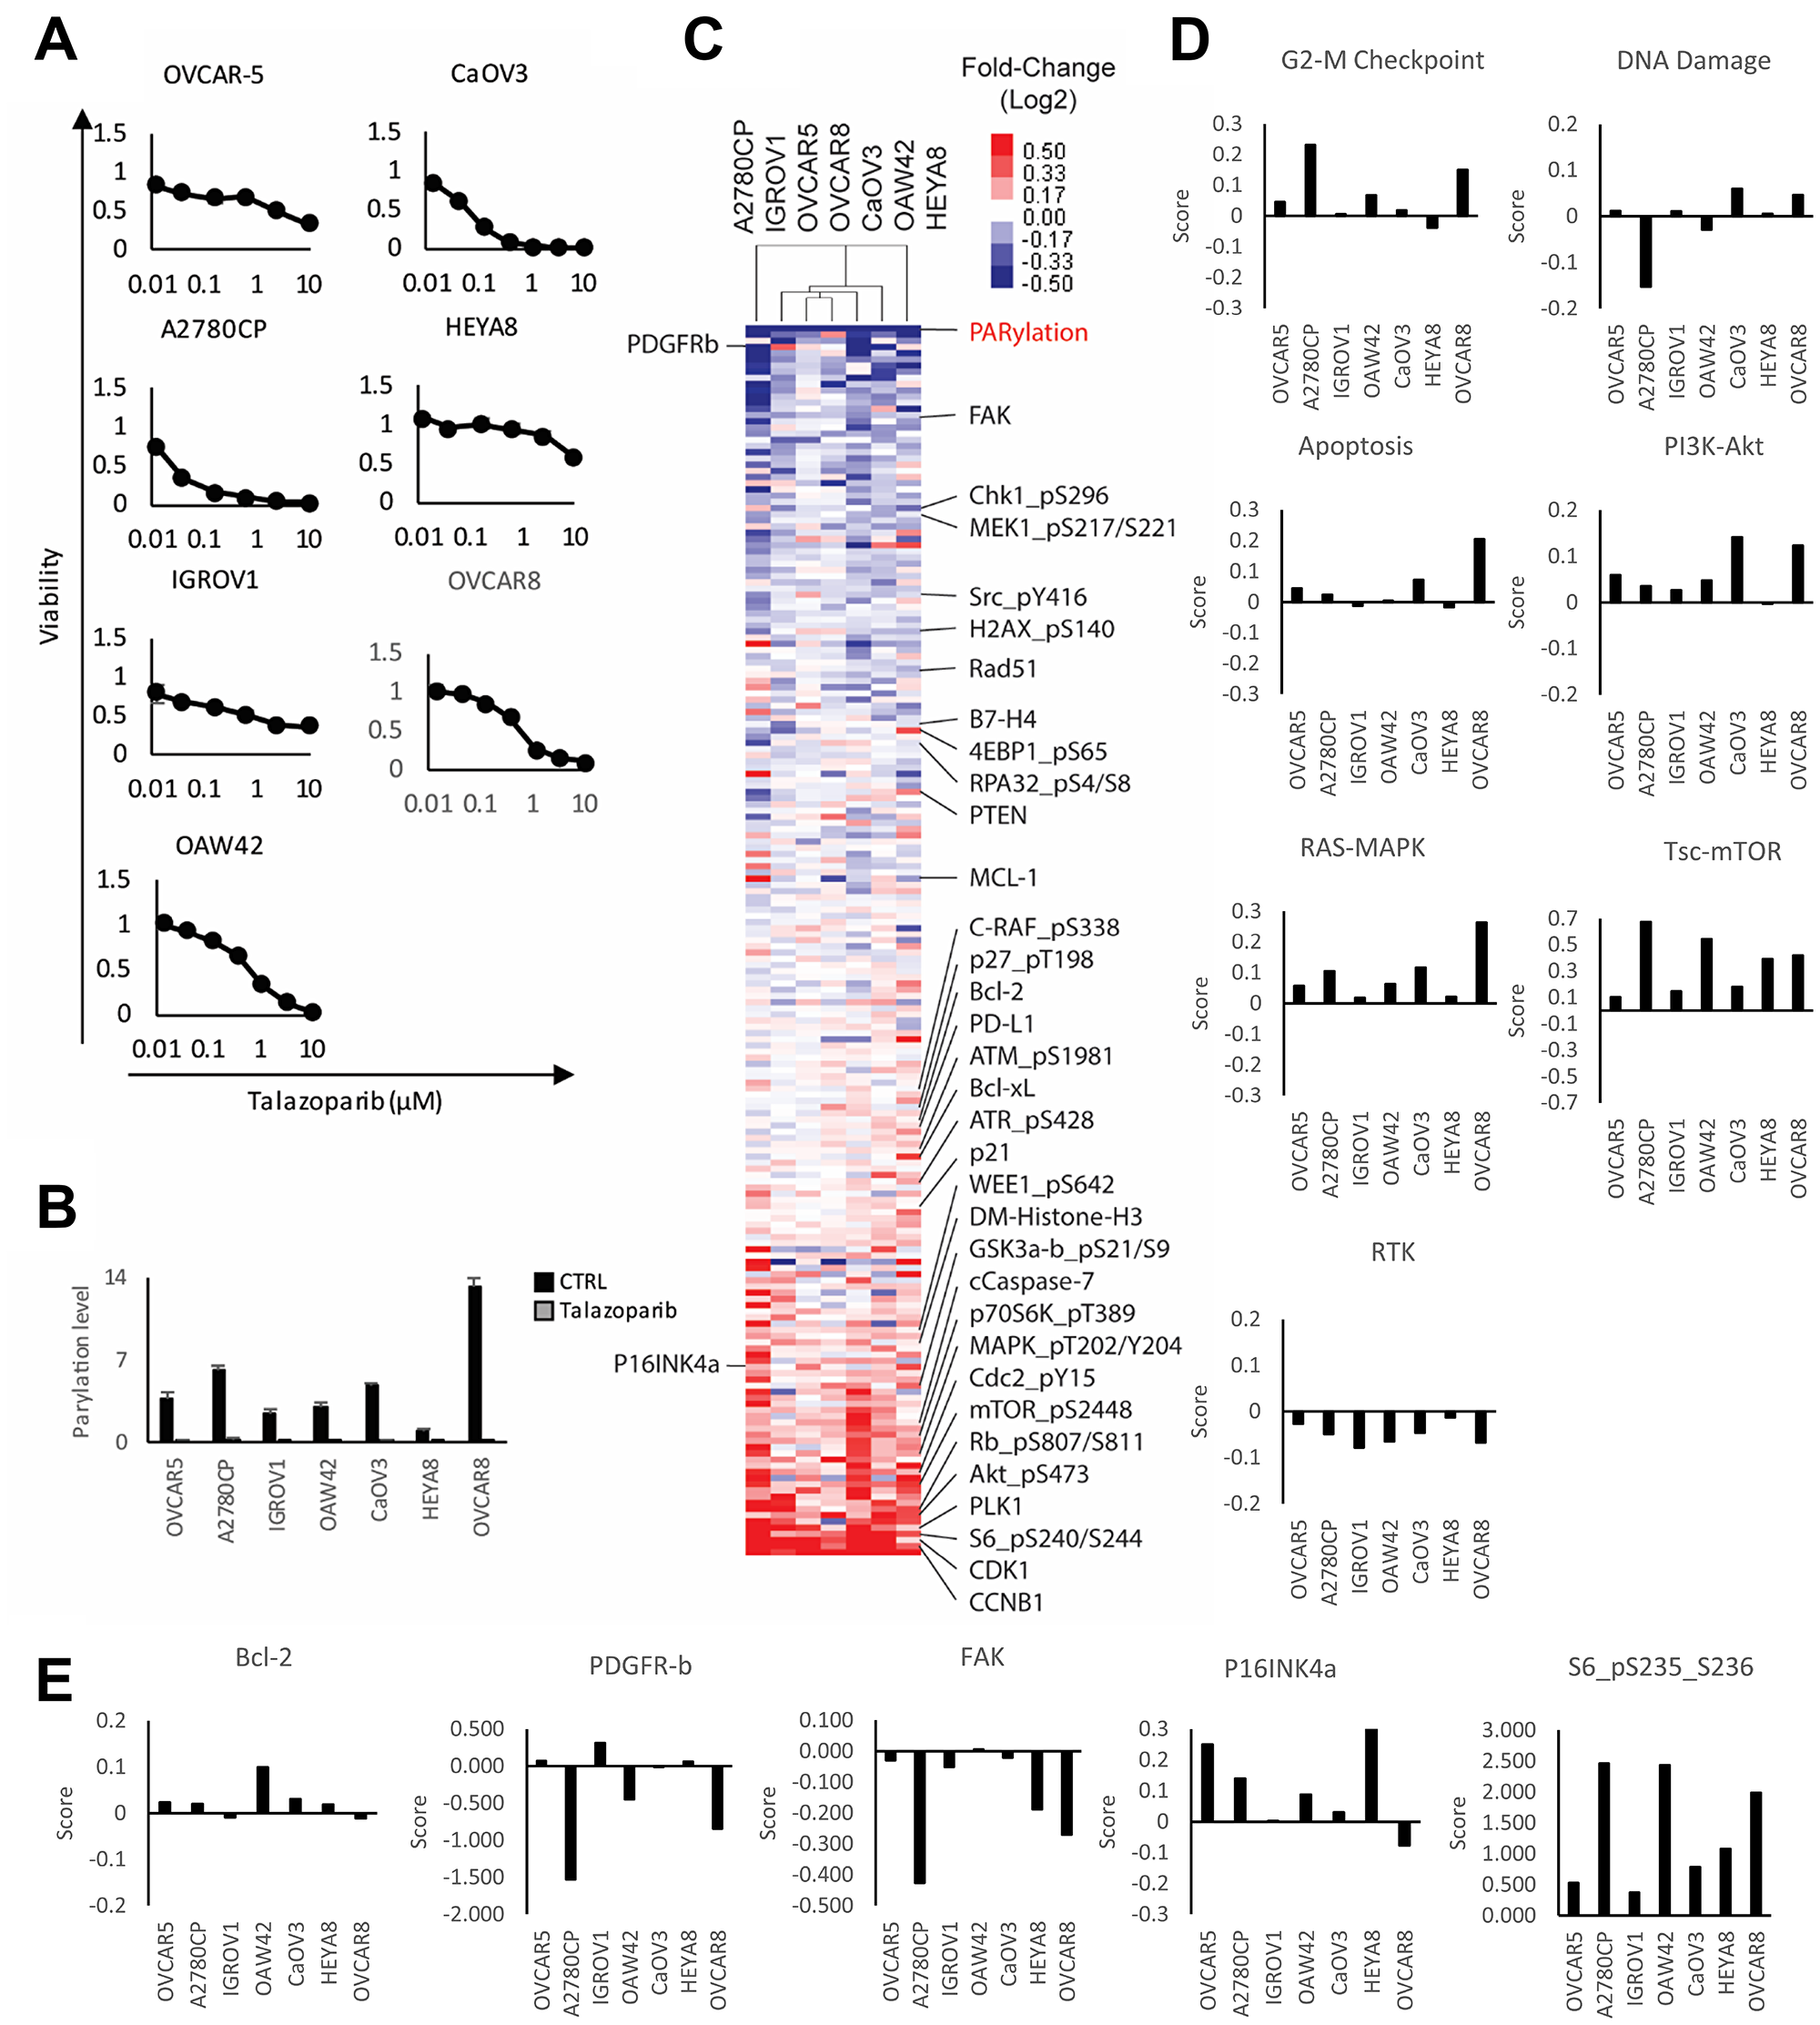 Adaptive response of ovarian cancer cell lines treated with PARP inhibitor.